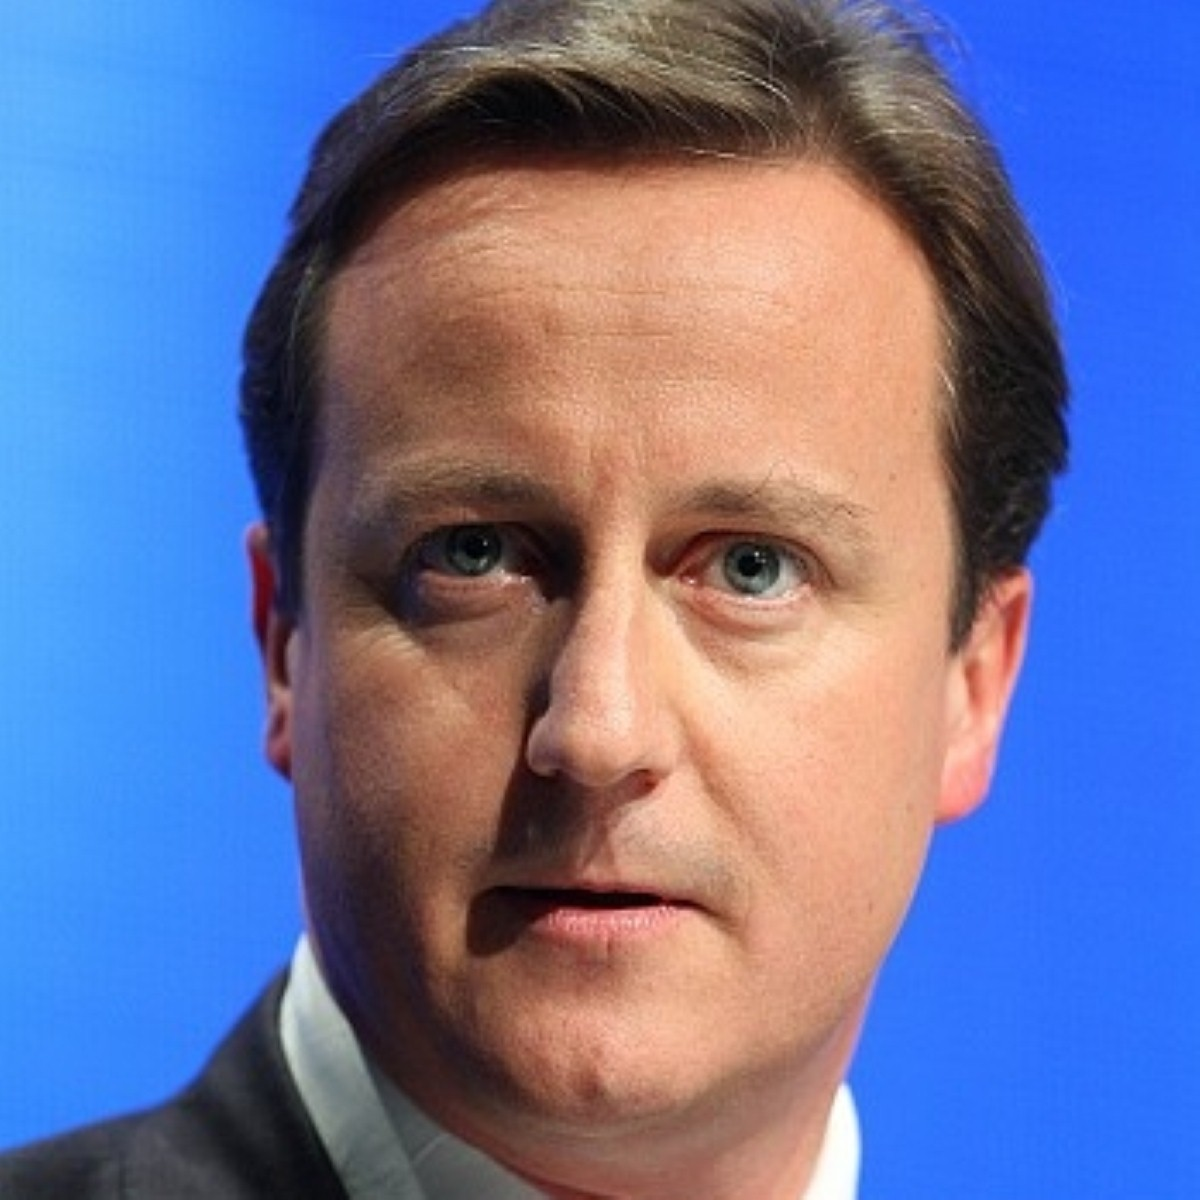 Cameron: Bold Britain is pro-business